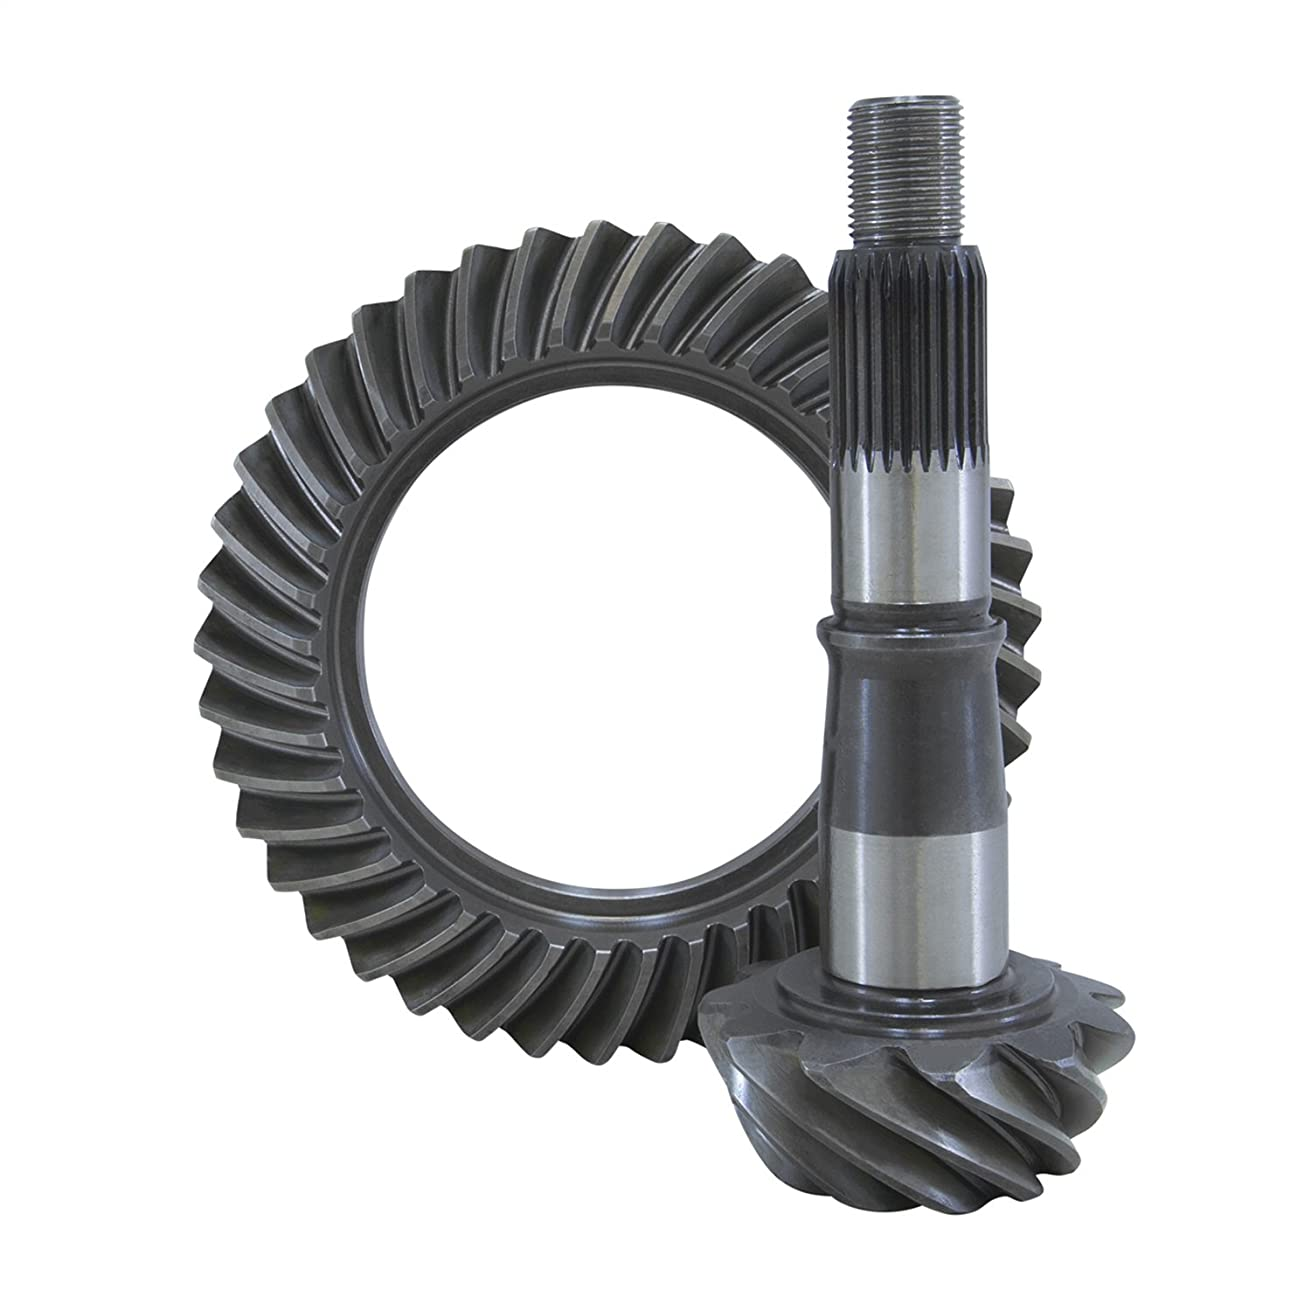 USA Standard Gear (ZG GM7.5-308) Ring and Pinion Gear Set for GM 7.5